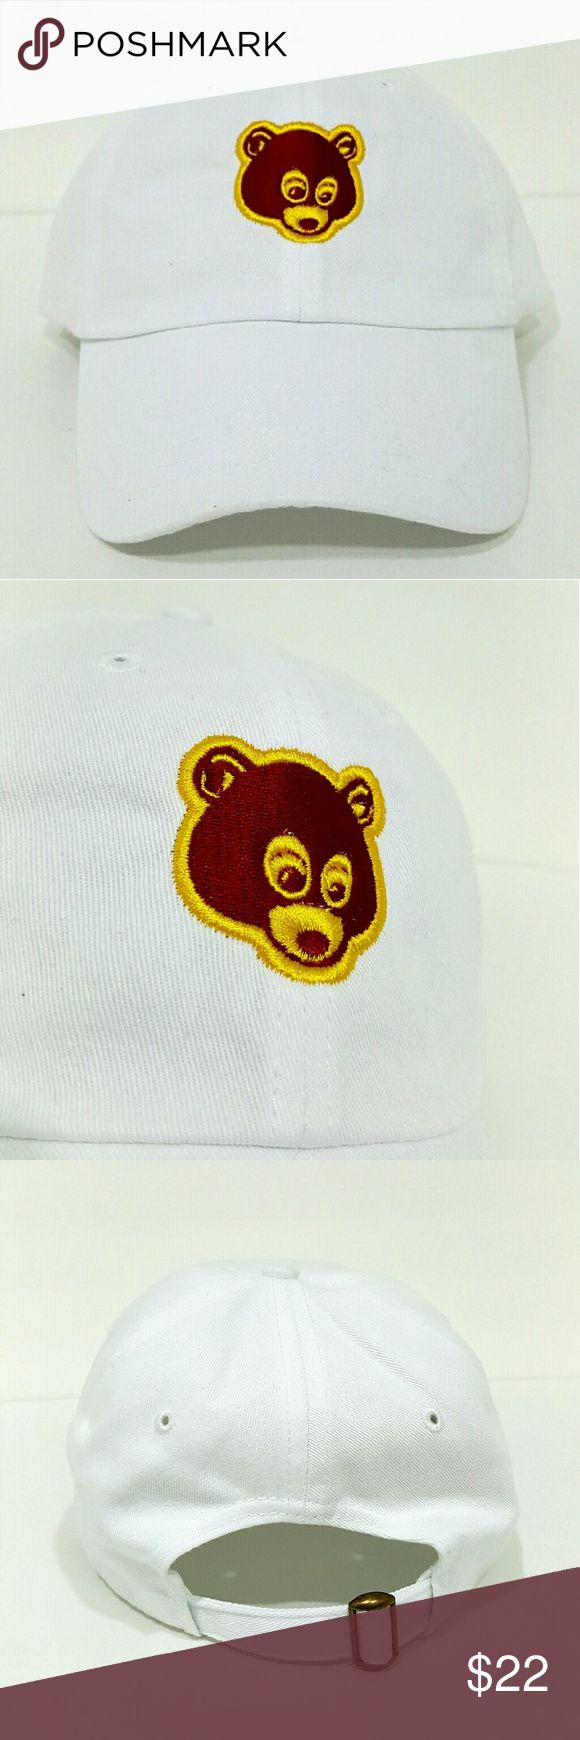 Kanye college dropout hat $$******READ DESCRIPTION*****$$   *New adjustable hat   *If posted still available   *I ship next day if purchased before 5 PM on Sunday and 7.30 PM every other day, if purchased after hours it will be shipped the day after tomorrow   *Shipping takes about 5 days please don't rate based off shipping speeding i don't control USPS   *Trusted seller buy with confidence. Accessories Hats